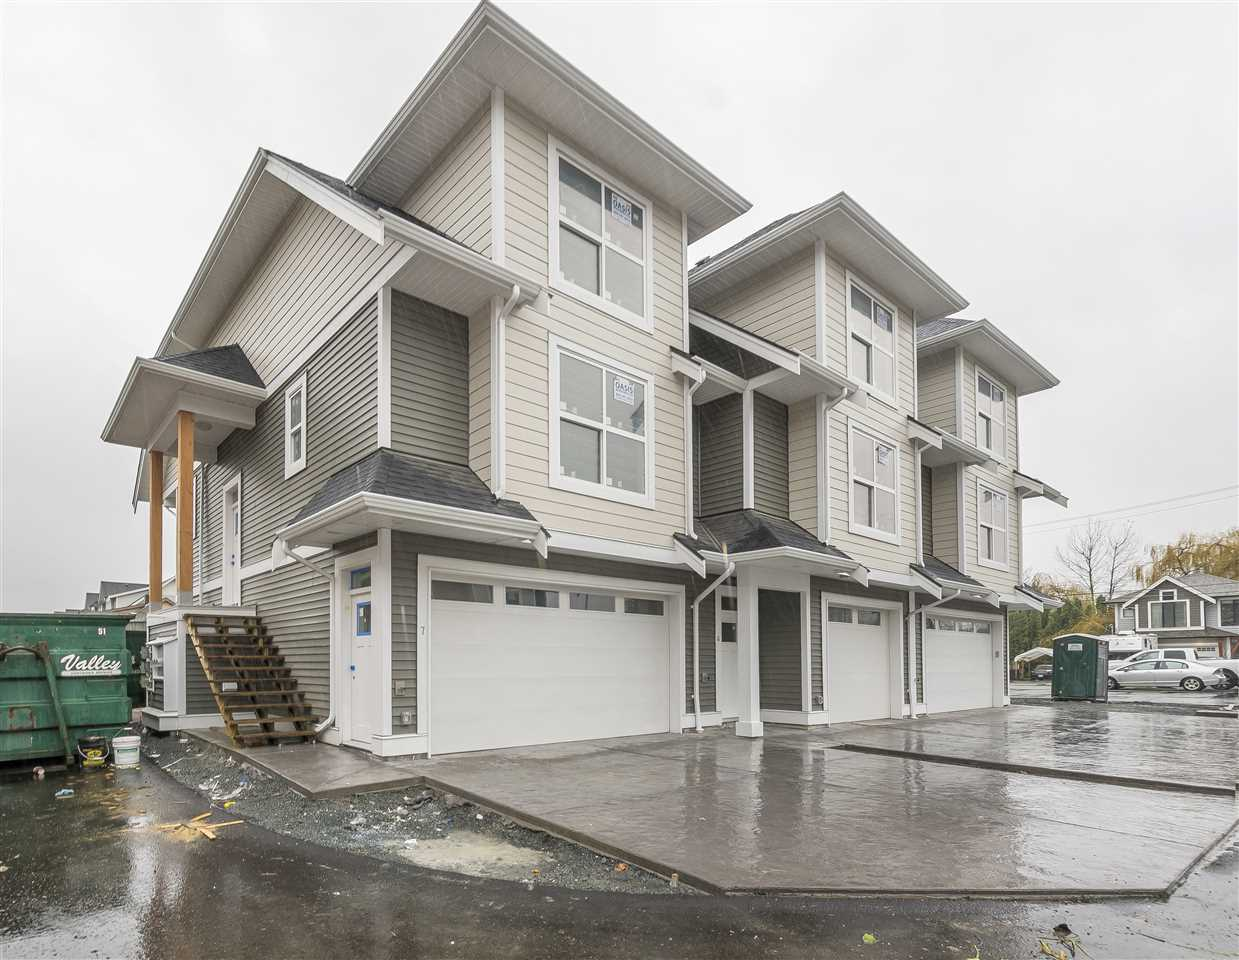 One of the nicest townhome complexes on the market! 11 units in total make this a quiet and cozy place to live. All units are complete with high-end finishing, full Stainless Steel appliance package and Modern color choices. Hardy Plank siding, 9' ceilings on the first and main floors, Community Garden and Childrens park private in complex. West side of Chilliwack, located near Prospera Centre, Hospital, Leisure Centre, Arts Centre, Skate park and Shopping. Homes feature 3brdms, 3bath with recreation room and bathroom on main floor off of garage. Options for Built in vac, Central Air Conditioning and Barbeque Box. Estimated completion for November 2017.